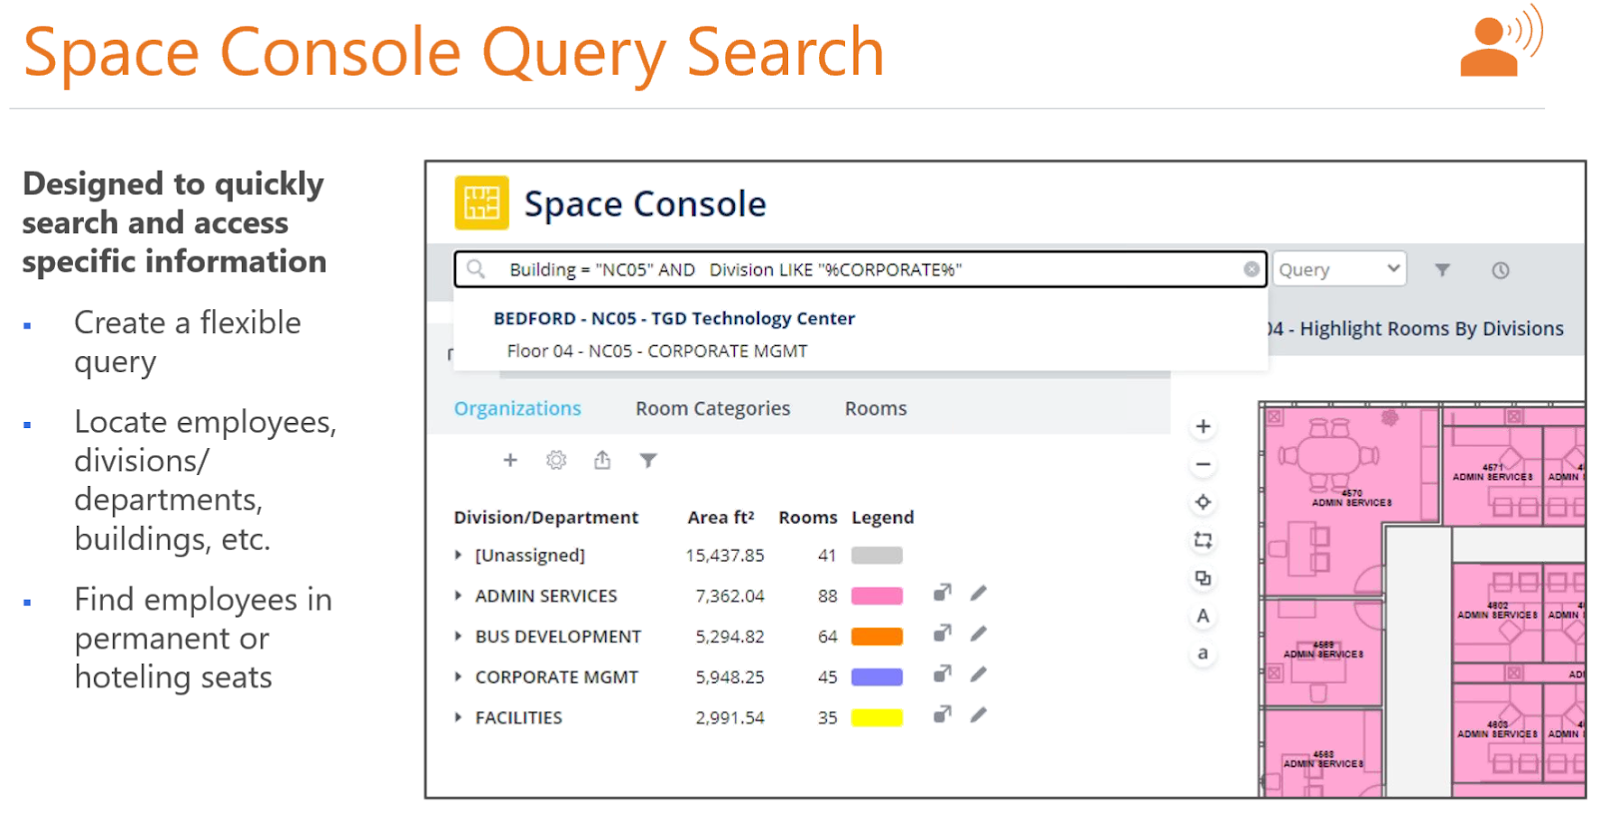 """Machine generated alternative text: Space Console Query Search  Designed to quickly  search and access  specific information  Create a flexible  query  Locate employees,  divisions/  departments,  buildings, etc.  Find employees in  permanent or  hoteling seats  r  Space Console  Q  Building - """"NC05"""" AND Division LIKE  BEDFORD - NC05 - TGD Technology center  Floor 04 - NC05 - CORPORATE MGMT  Organizations  Room Categories  Rooms  Legend  Division/Department  [Unassigned]  ADMIN SERVICES  BUS DEVELOPMENT  CORPORATE MGMT  FACILITIES  Area ft2  15,437.85  7,362.04  5,294.82  5,948.25  2,991.54  Rooms  41  35  O Query  )4 - Highlight Rooms By Divisions  IEjLj Lj"""